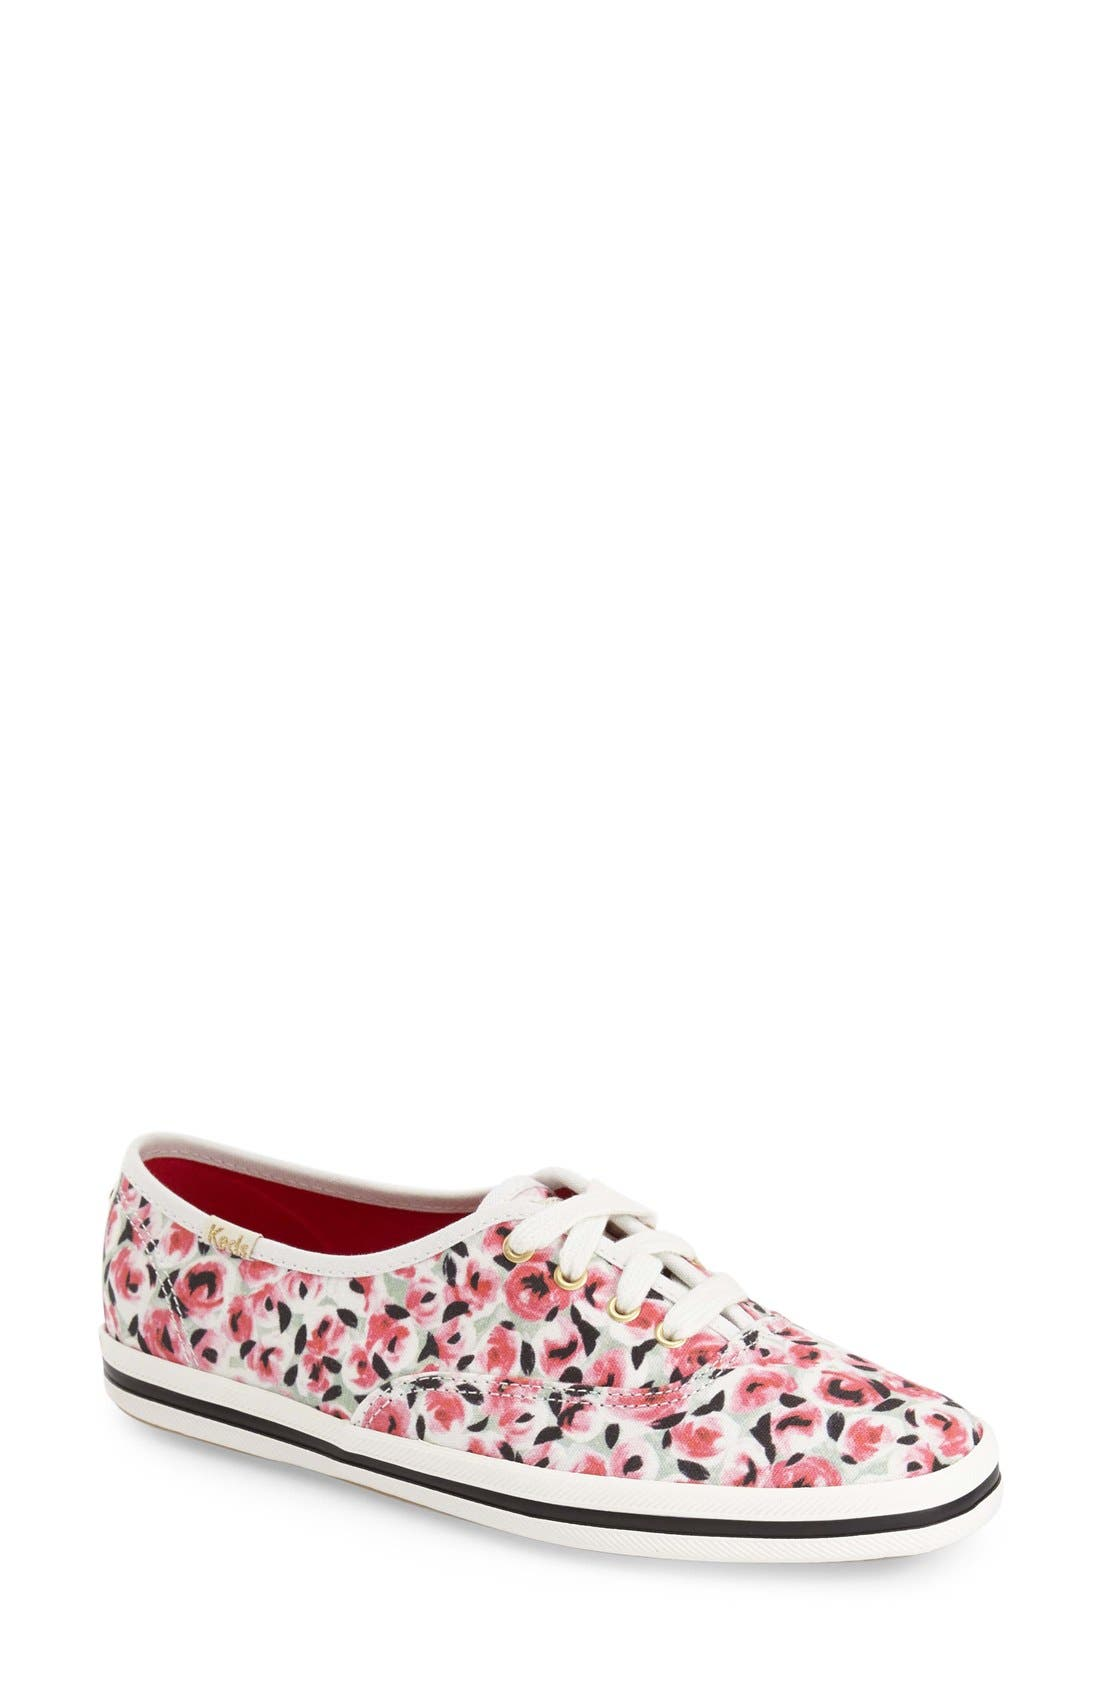 Main Image - Keds® for kate spade new york 'kick' print sneaker (Women)